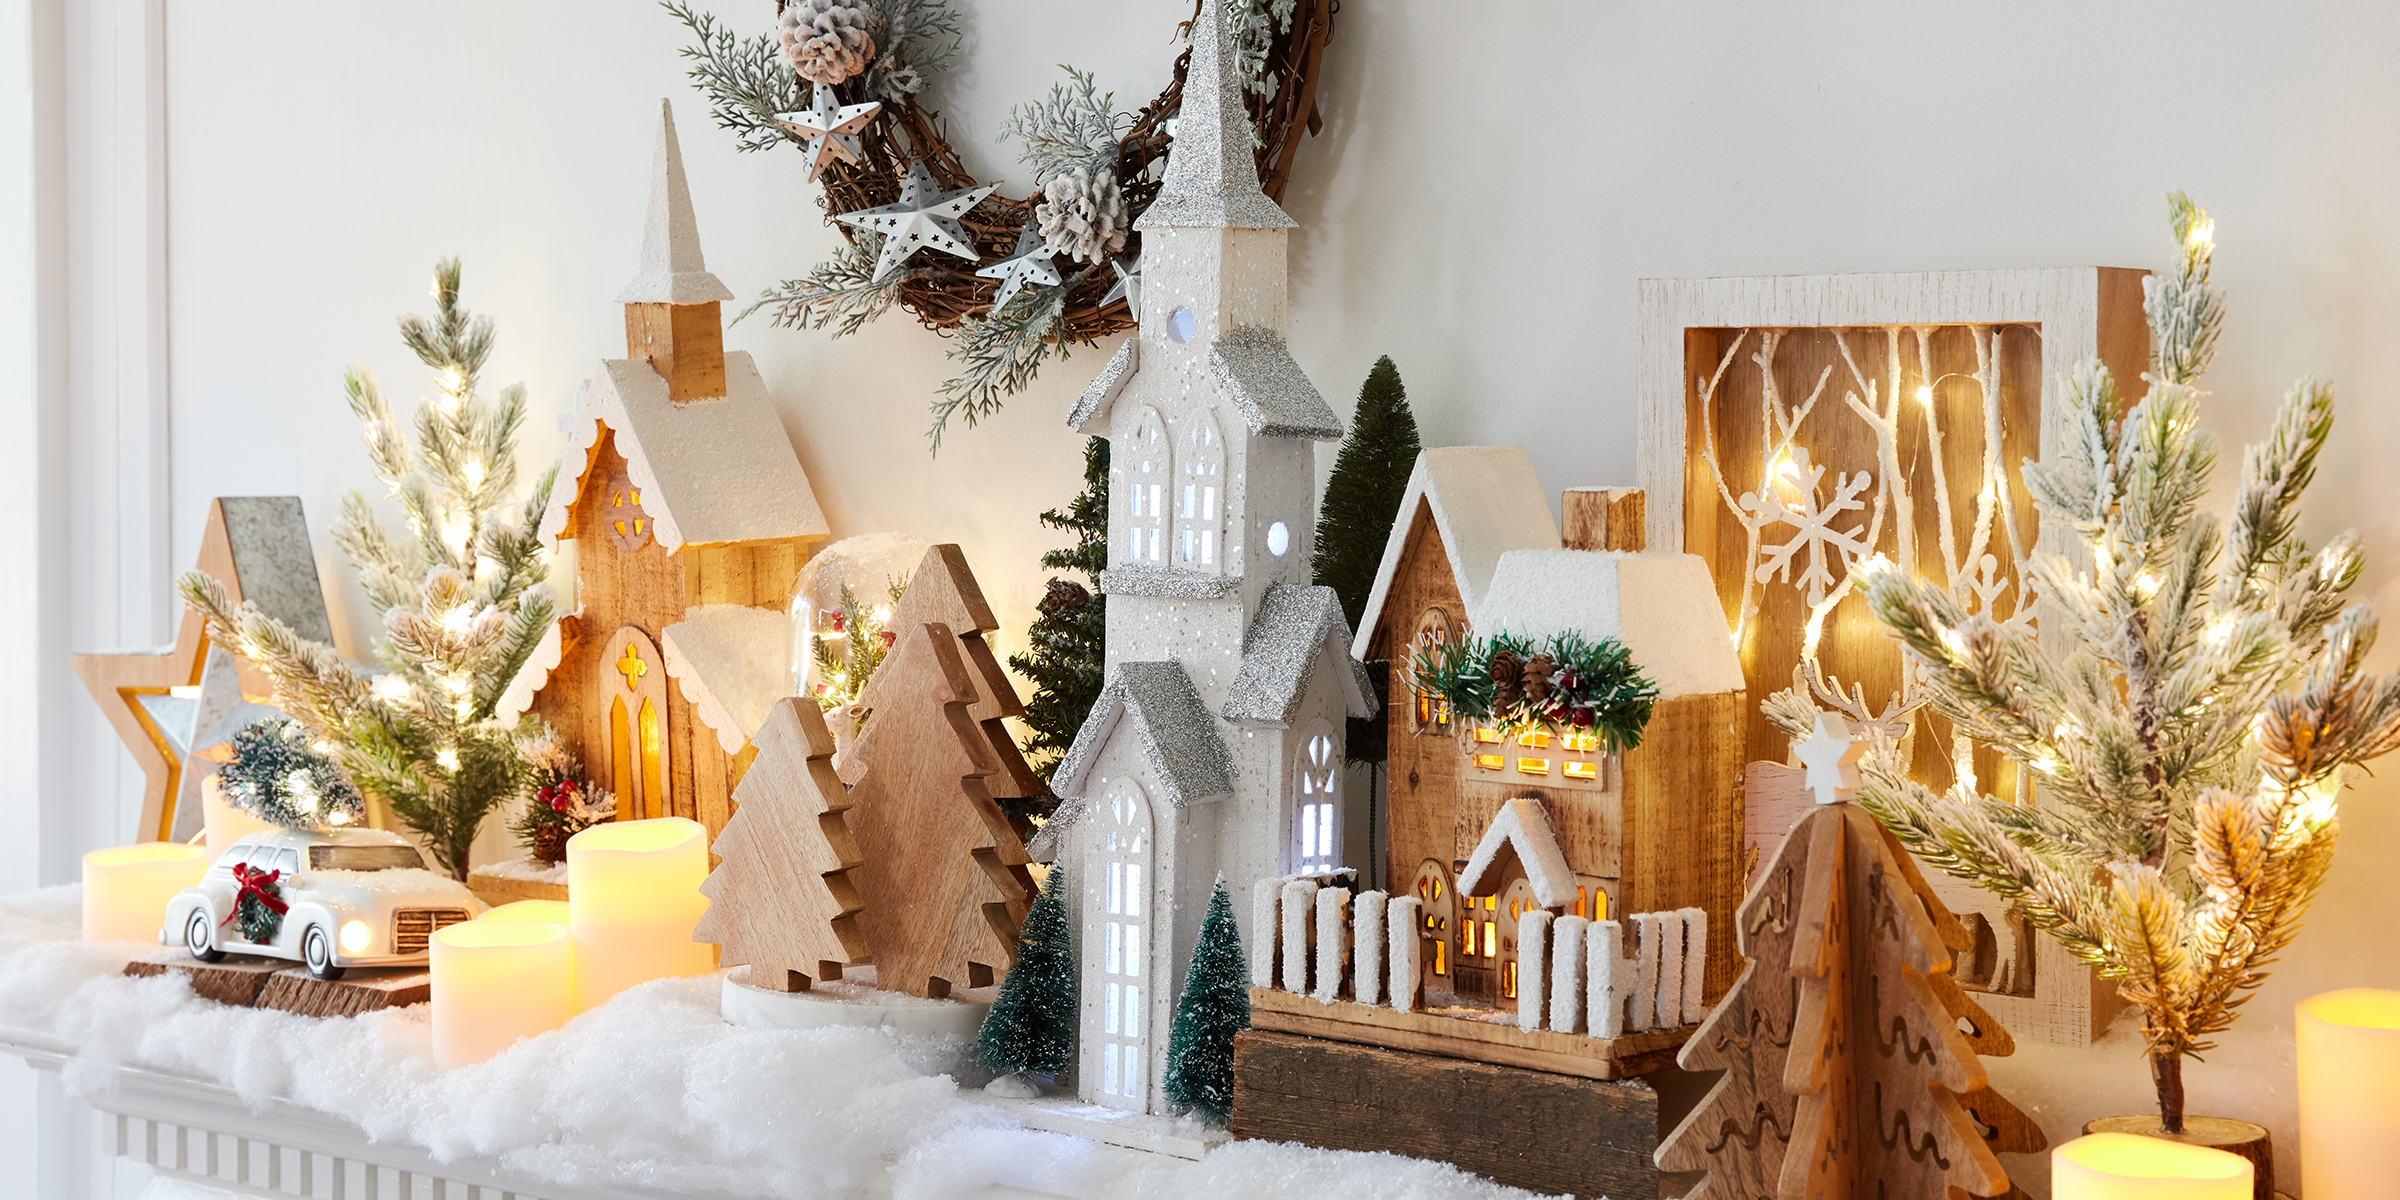 5 fireplace and mantel decoration ideas for Christmas